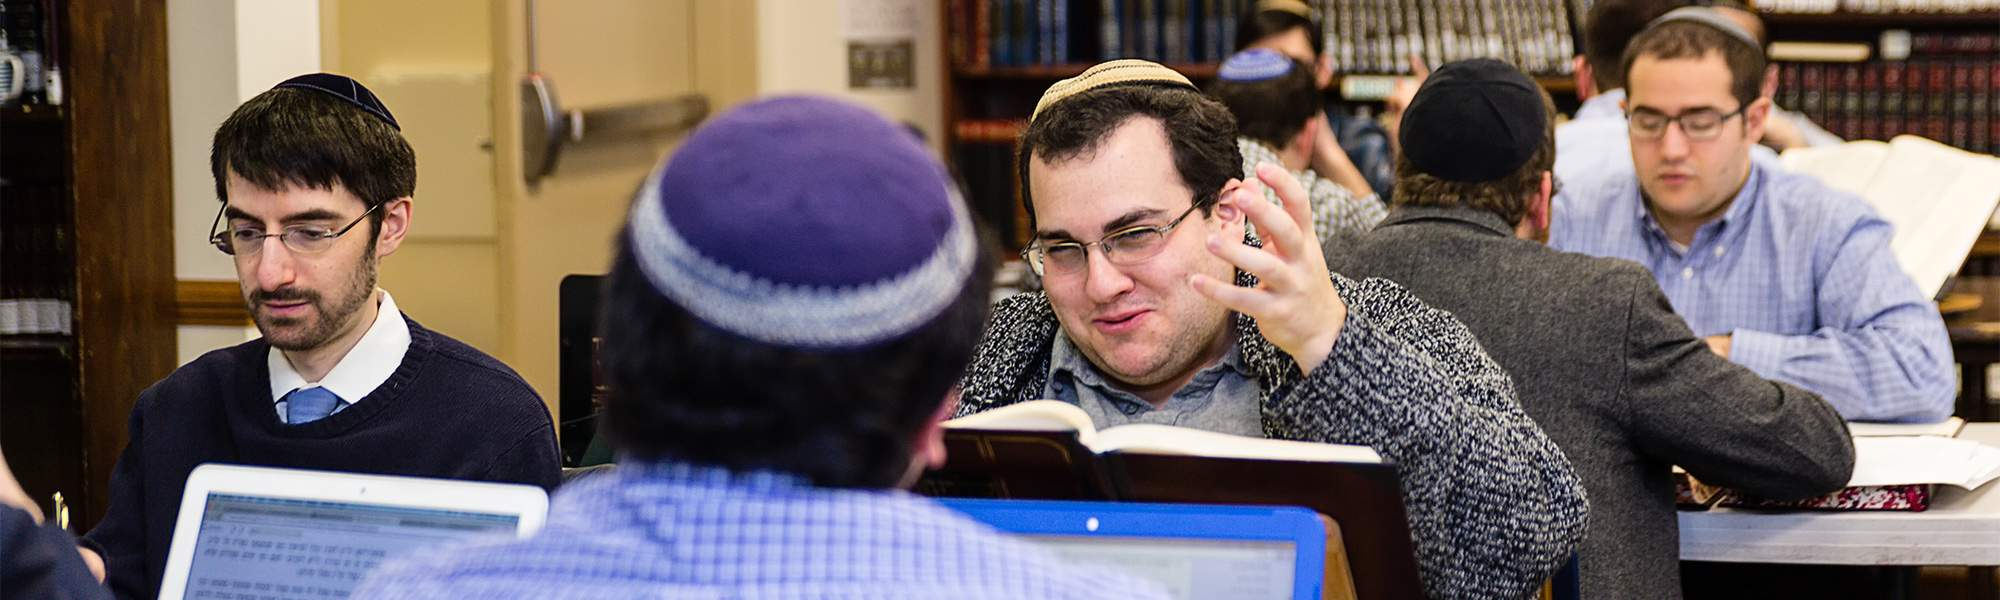 Culture - Yeshivat Chovevei Torah, Setting the standard in rabbinic education